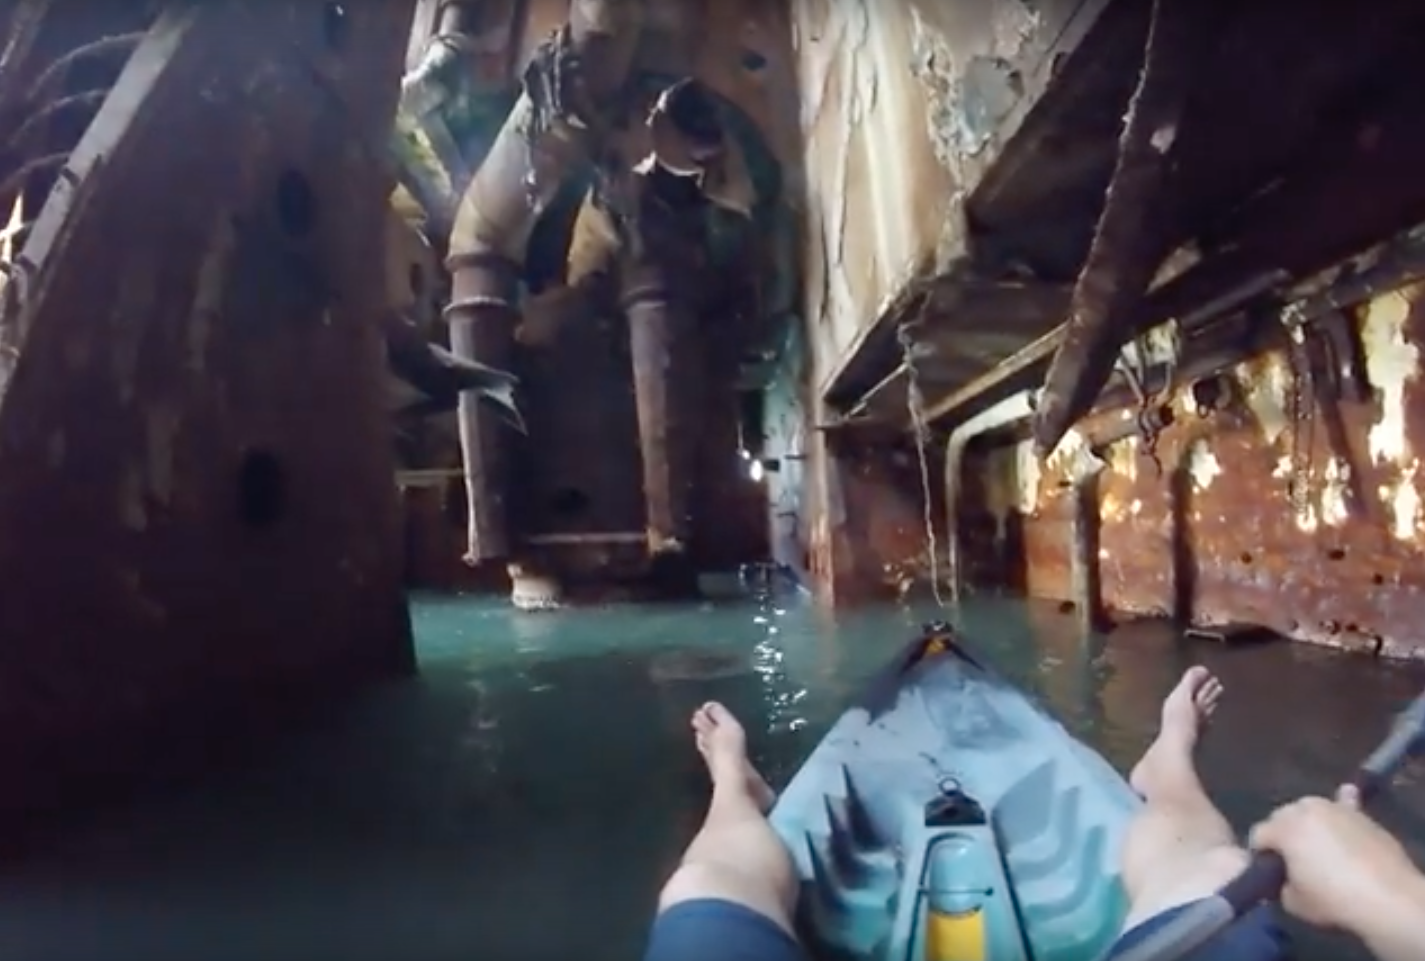 Video Takes You Inside an Abandoned Shipwreck in Romania